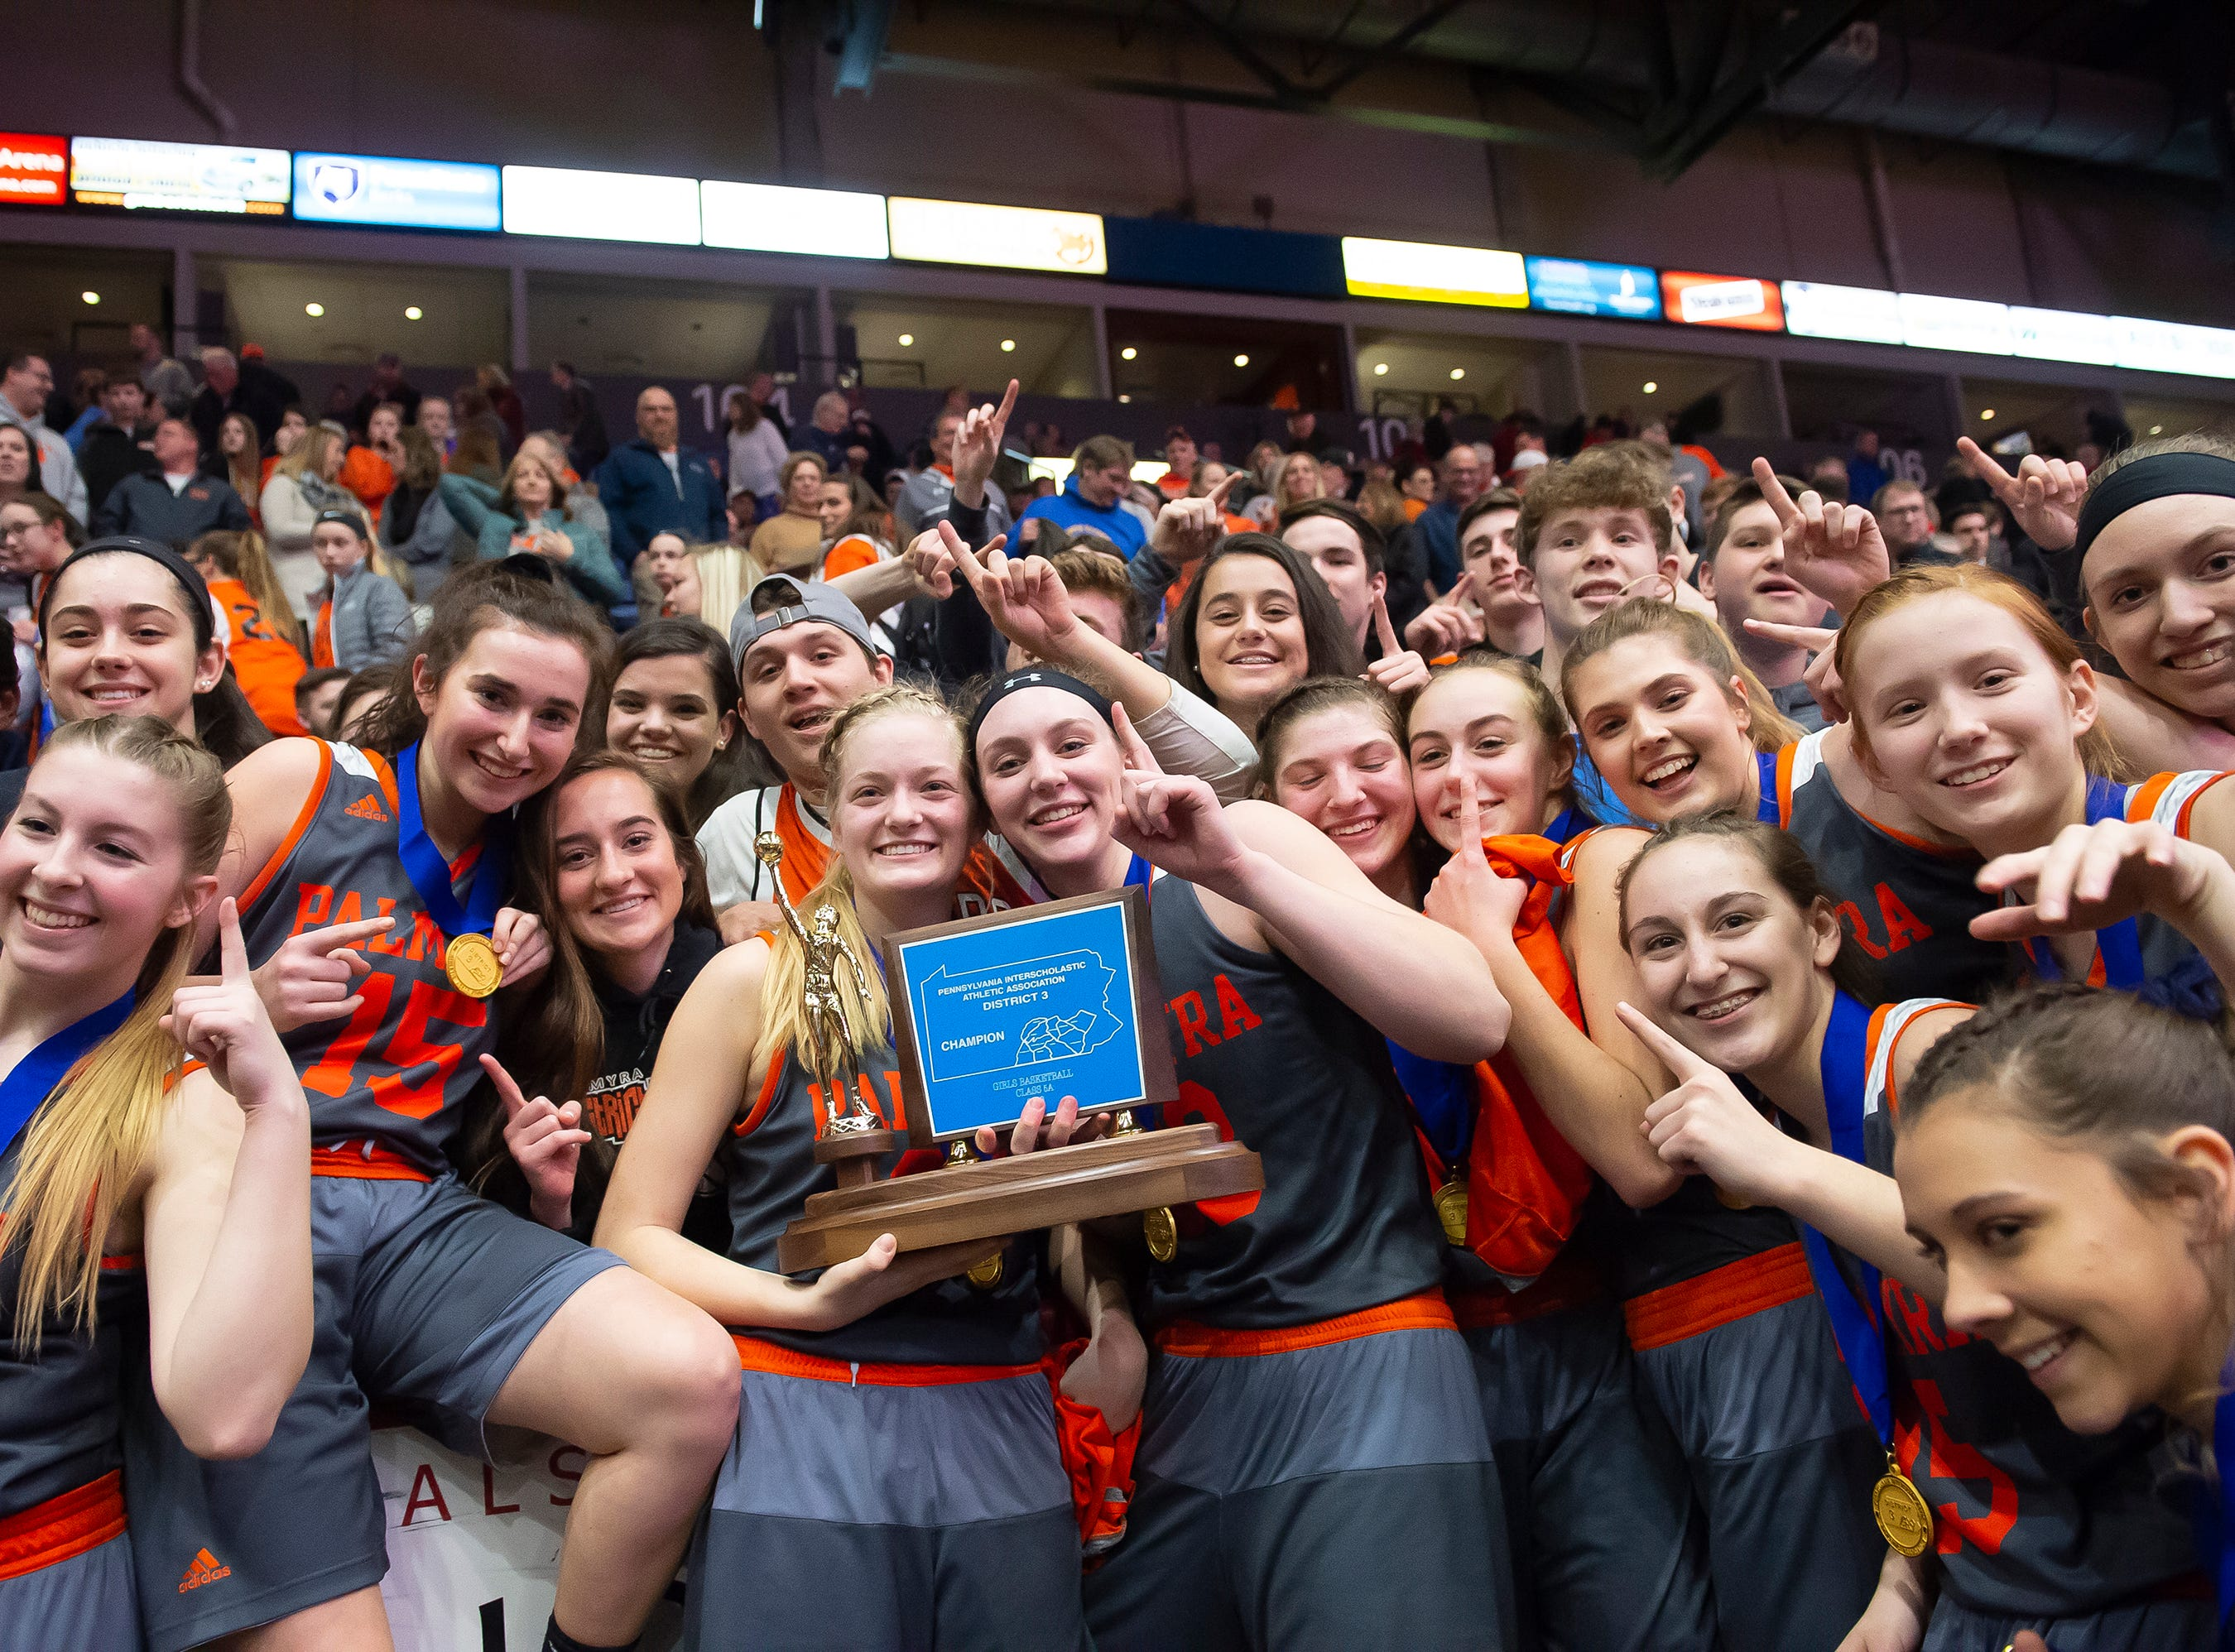 Palmyra players pose with the student section after defeating Gettysburg in the District 3 5A girls championship game at Santander Arena in Reading, Pa., Friday, March 1, 2019. The Cougars won 31-23.